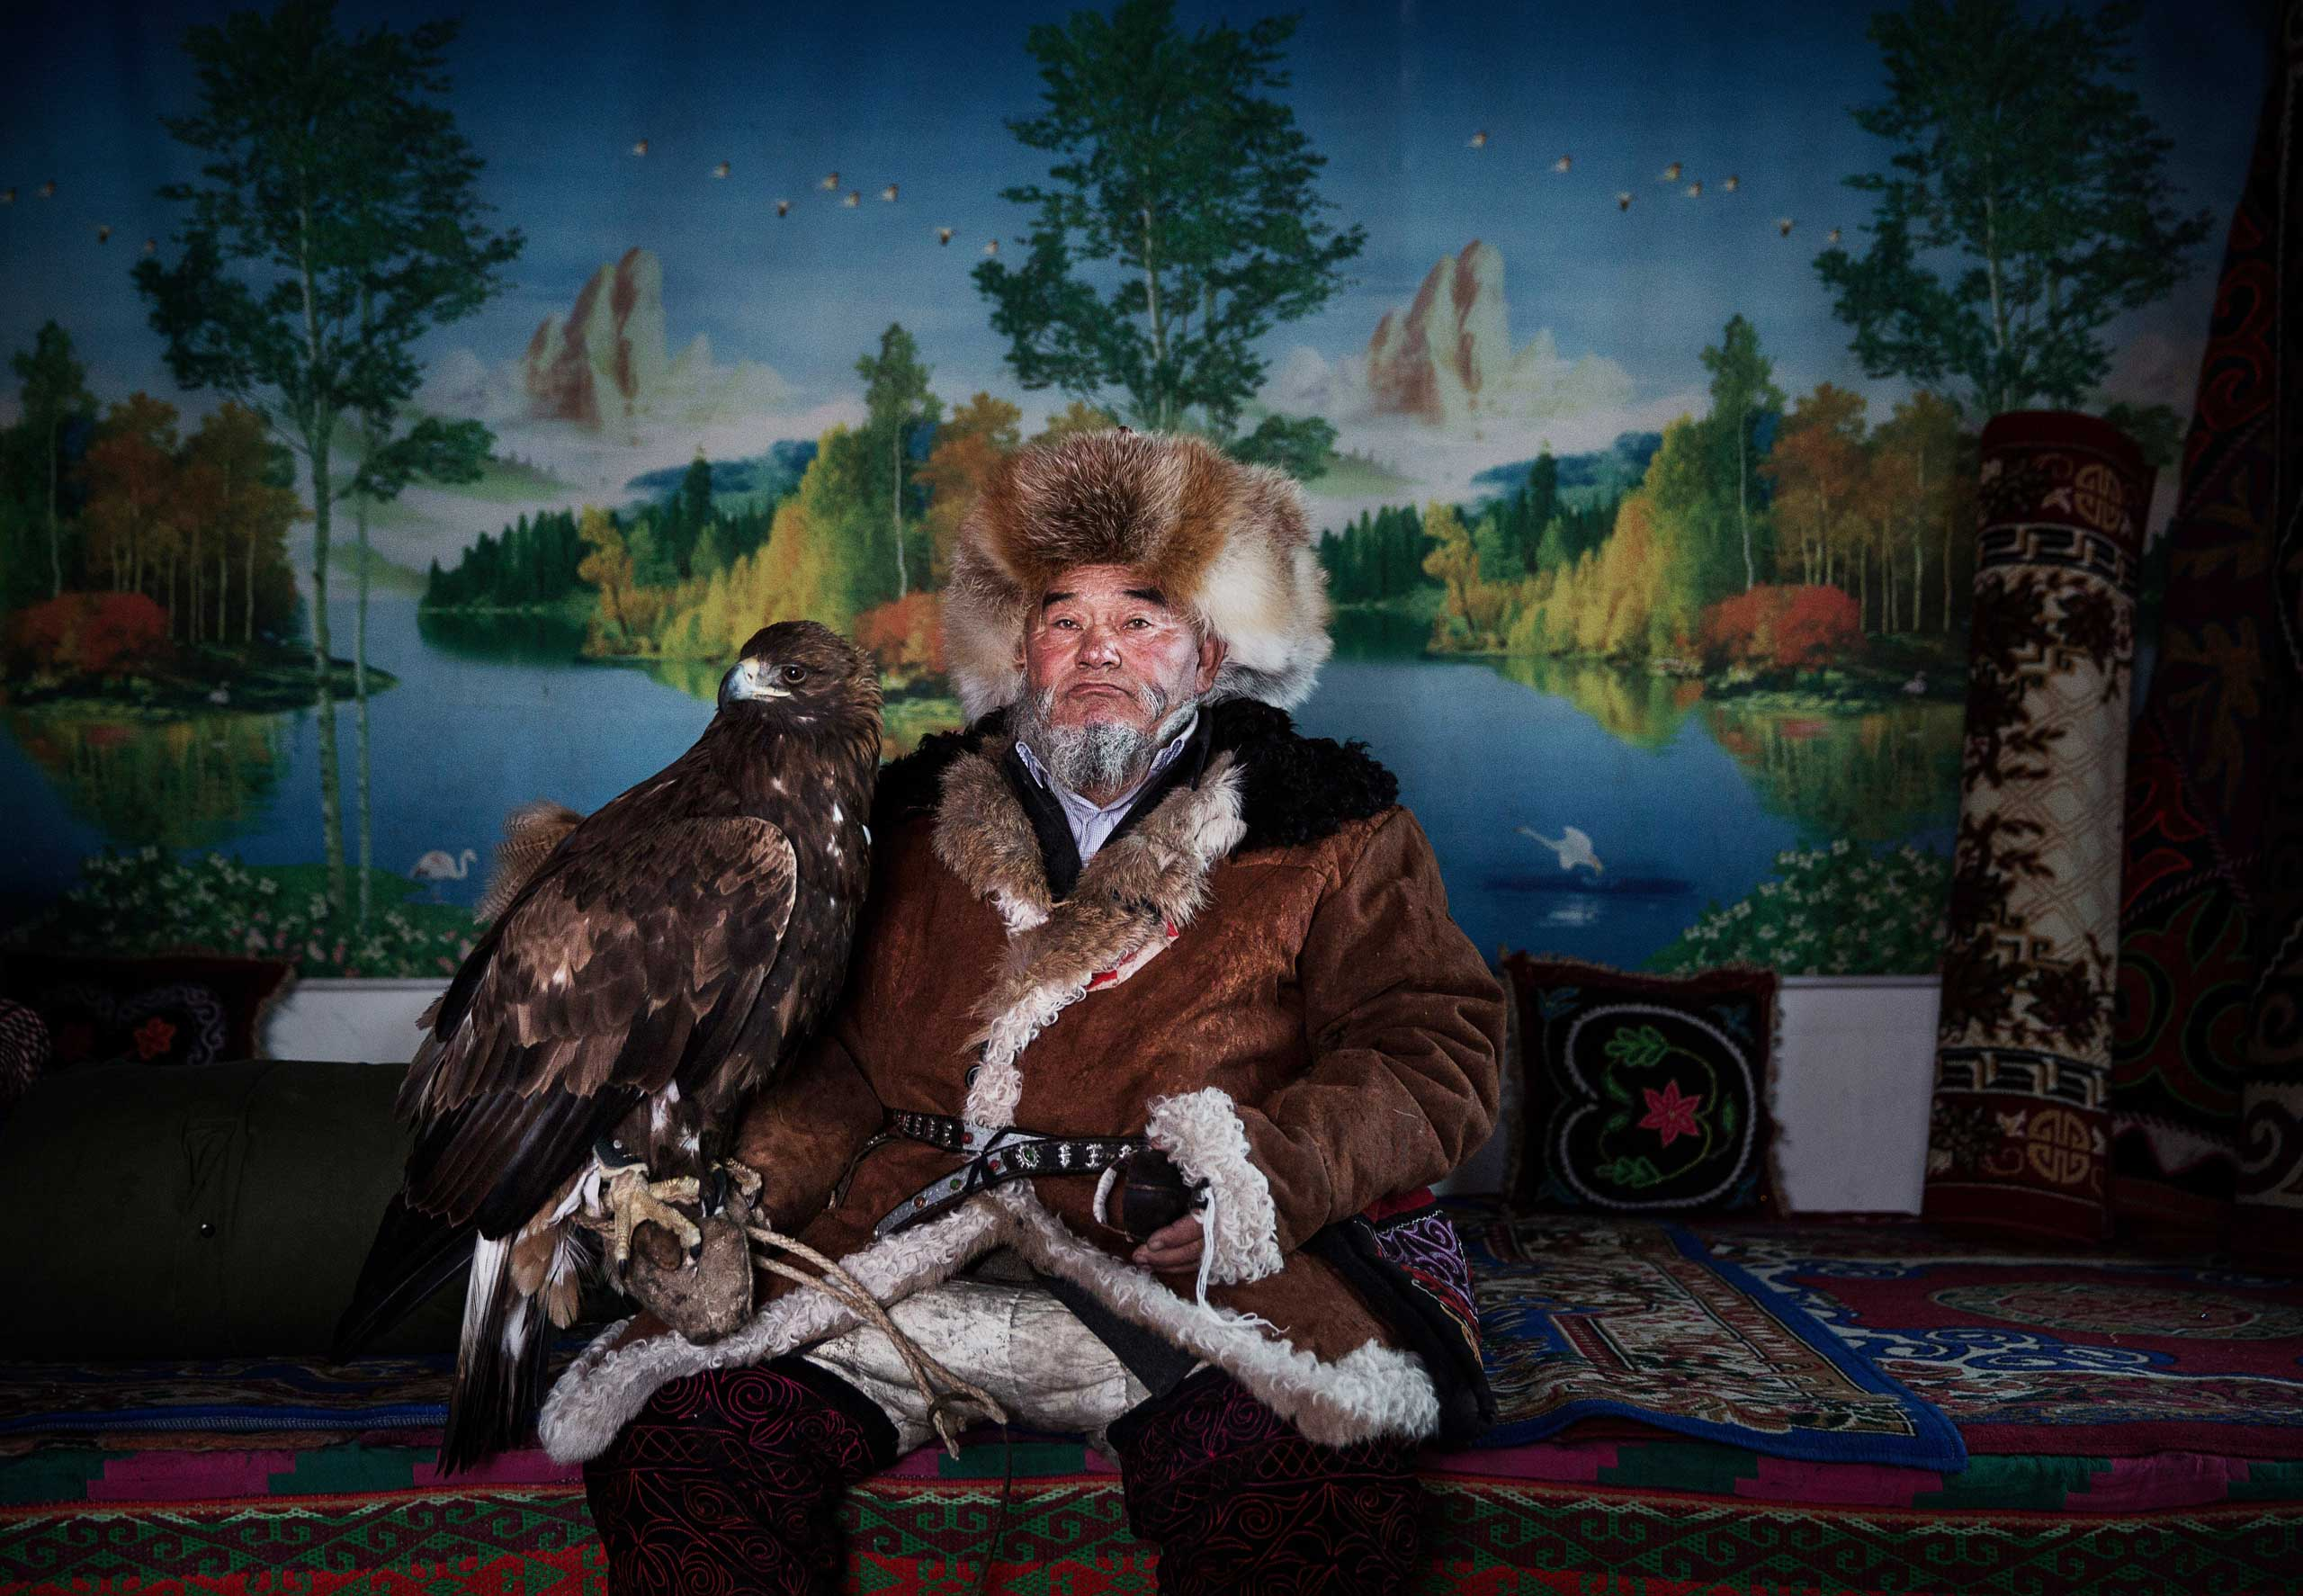 Chinese Kazakh eagle hunter Margars Mazkin, 74, sits with his eagle before leaving for competition on Jan. 31, 2015 in the mountains of Qinghe County, Xinjiang, northwestern China.